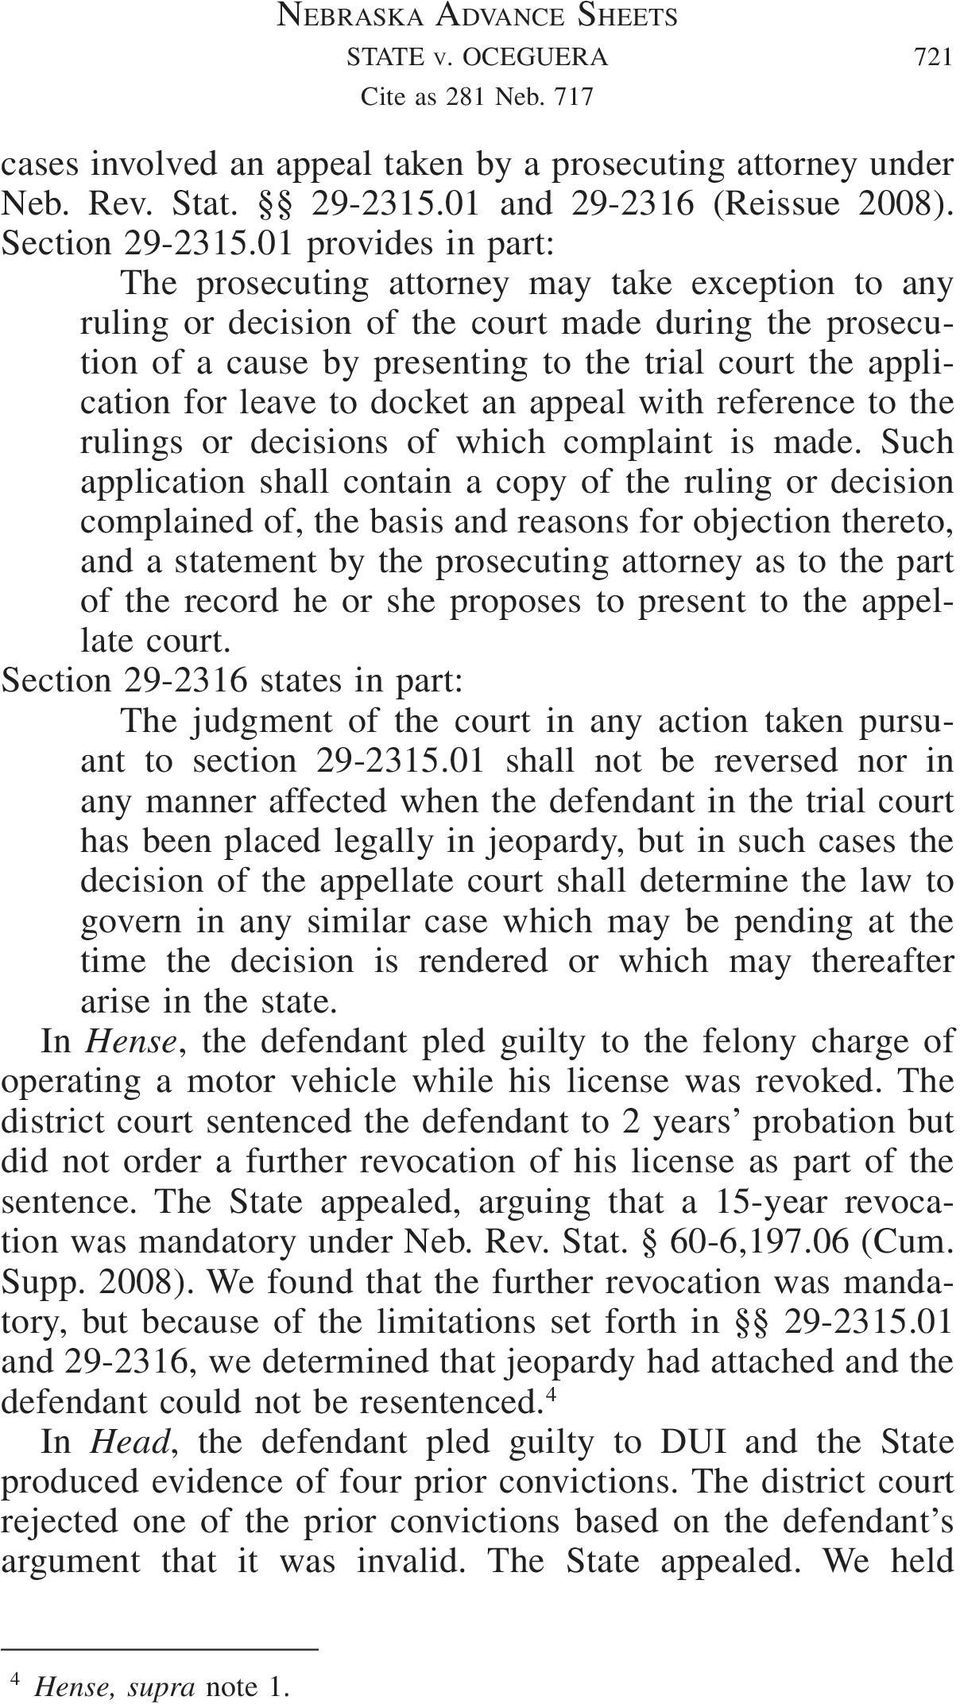 leave to docket an appeal with reference to the rulings or decisions of which complaint is made.